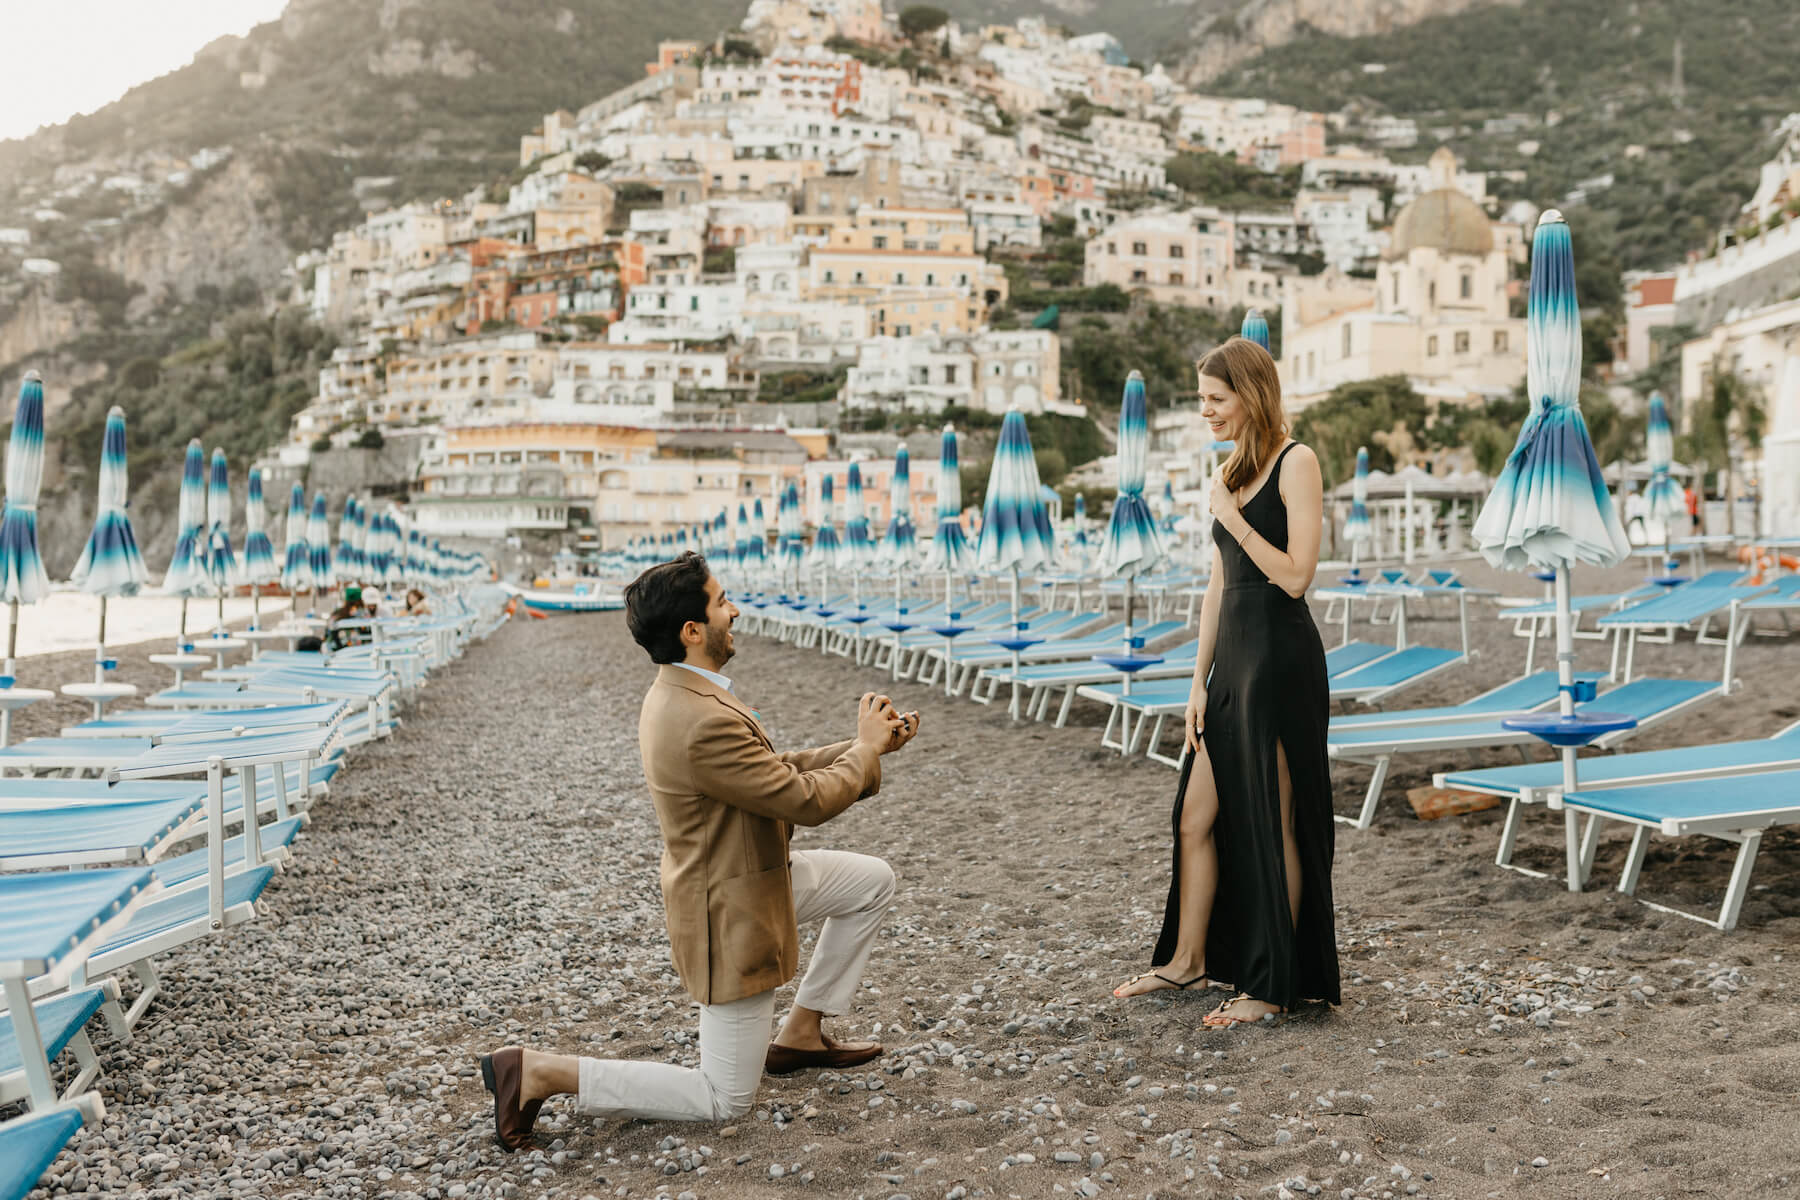 man is proposing to a woman and is on one knee on the beach in Positano, both are wearing semi-formal attire